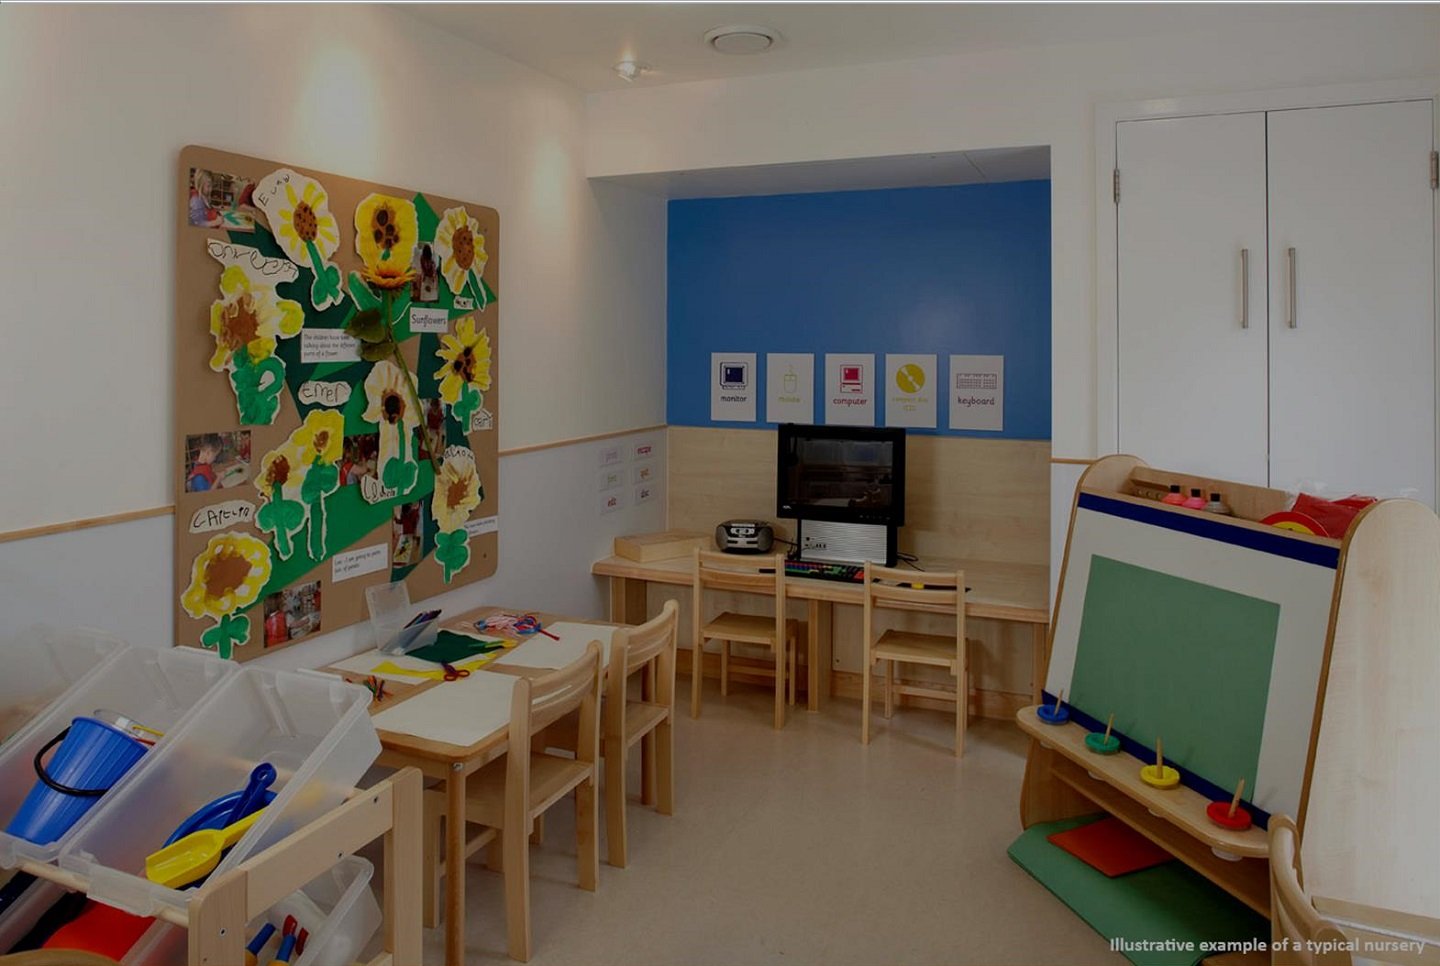 Guildford Day Nursery and Preschool Guildford 03300 574978